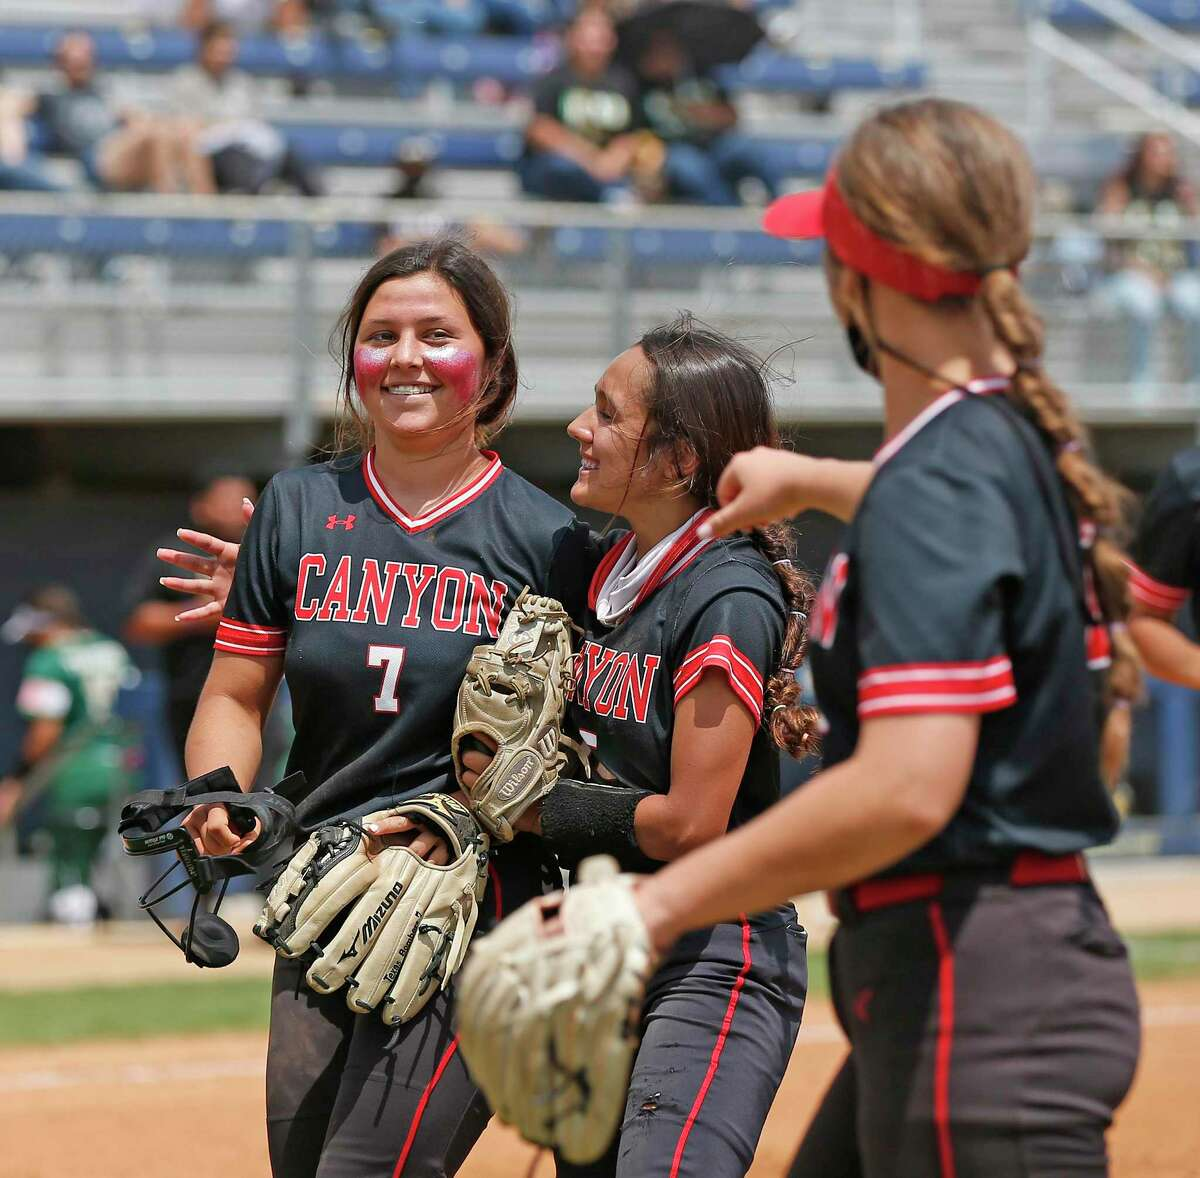 Canyon Bella Mitchell #7 is congratulated by teammates after striking out the batter to end the third inning. Softball playoff Game 2 of best of 3 between New Braunfels Canyon and Southwest Legacy on Saturday, May 8, 2021 at St. Mary's University.